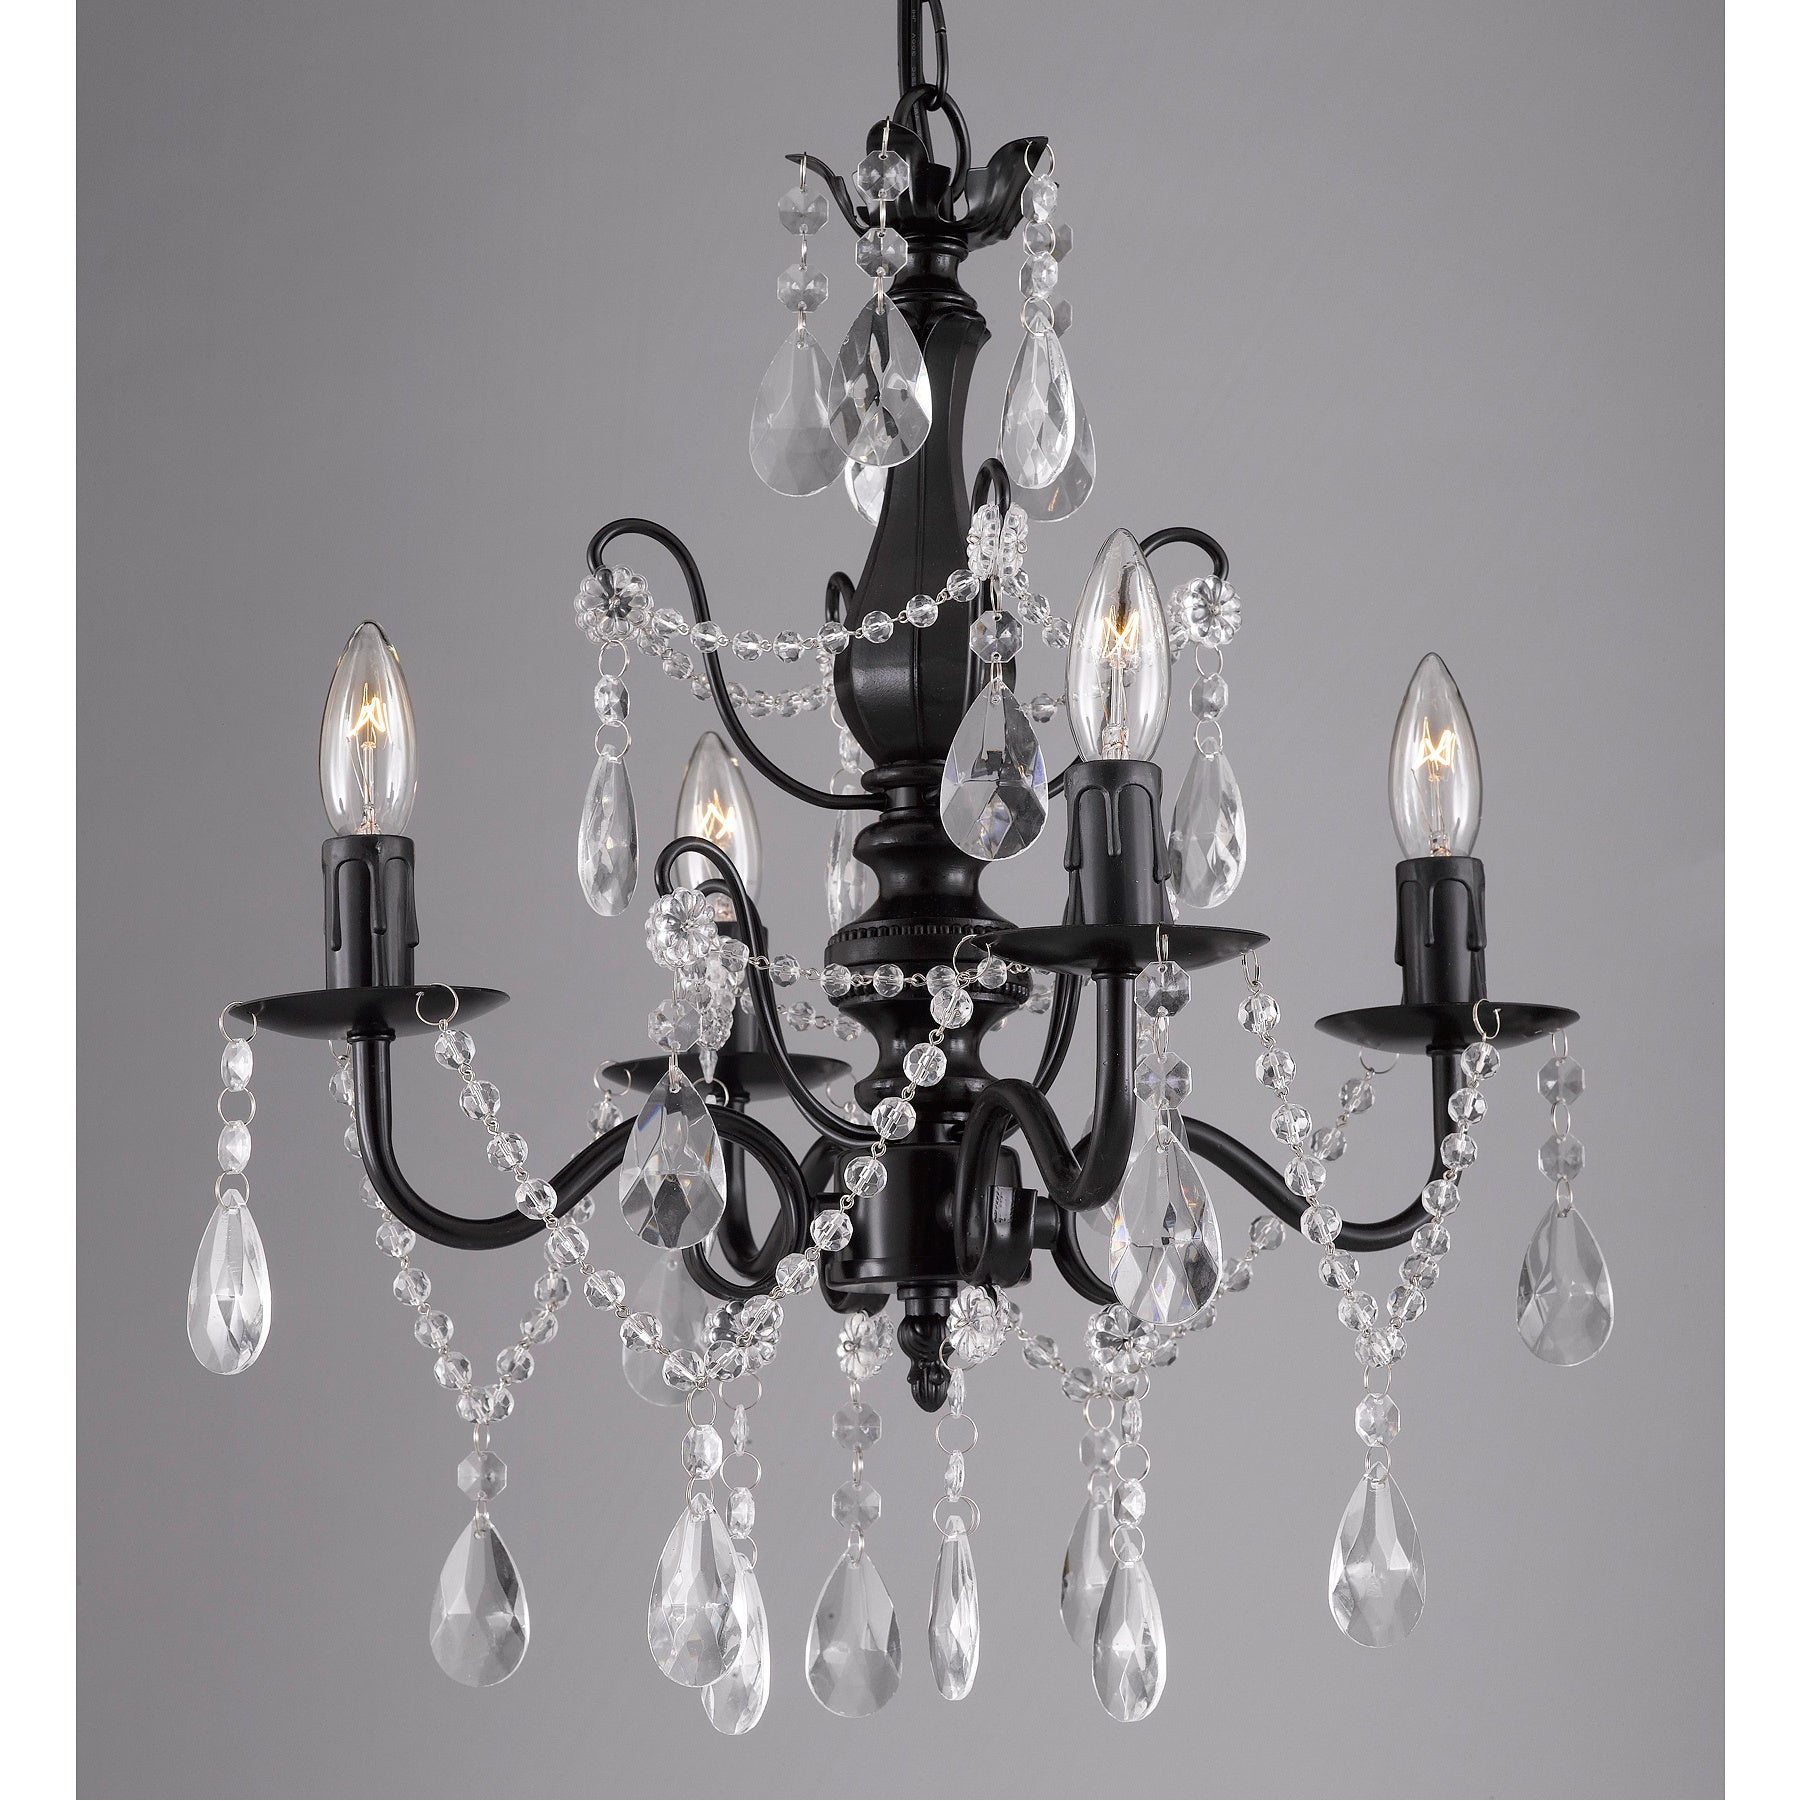 crystal index xiertekusa antique lights w pedant and copper light cone chandeliers chandelier iron all drop shape annabelle products glass